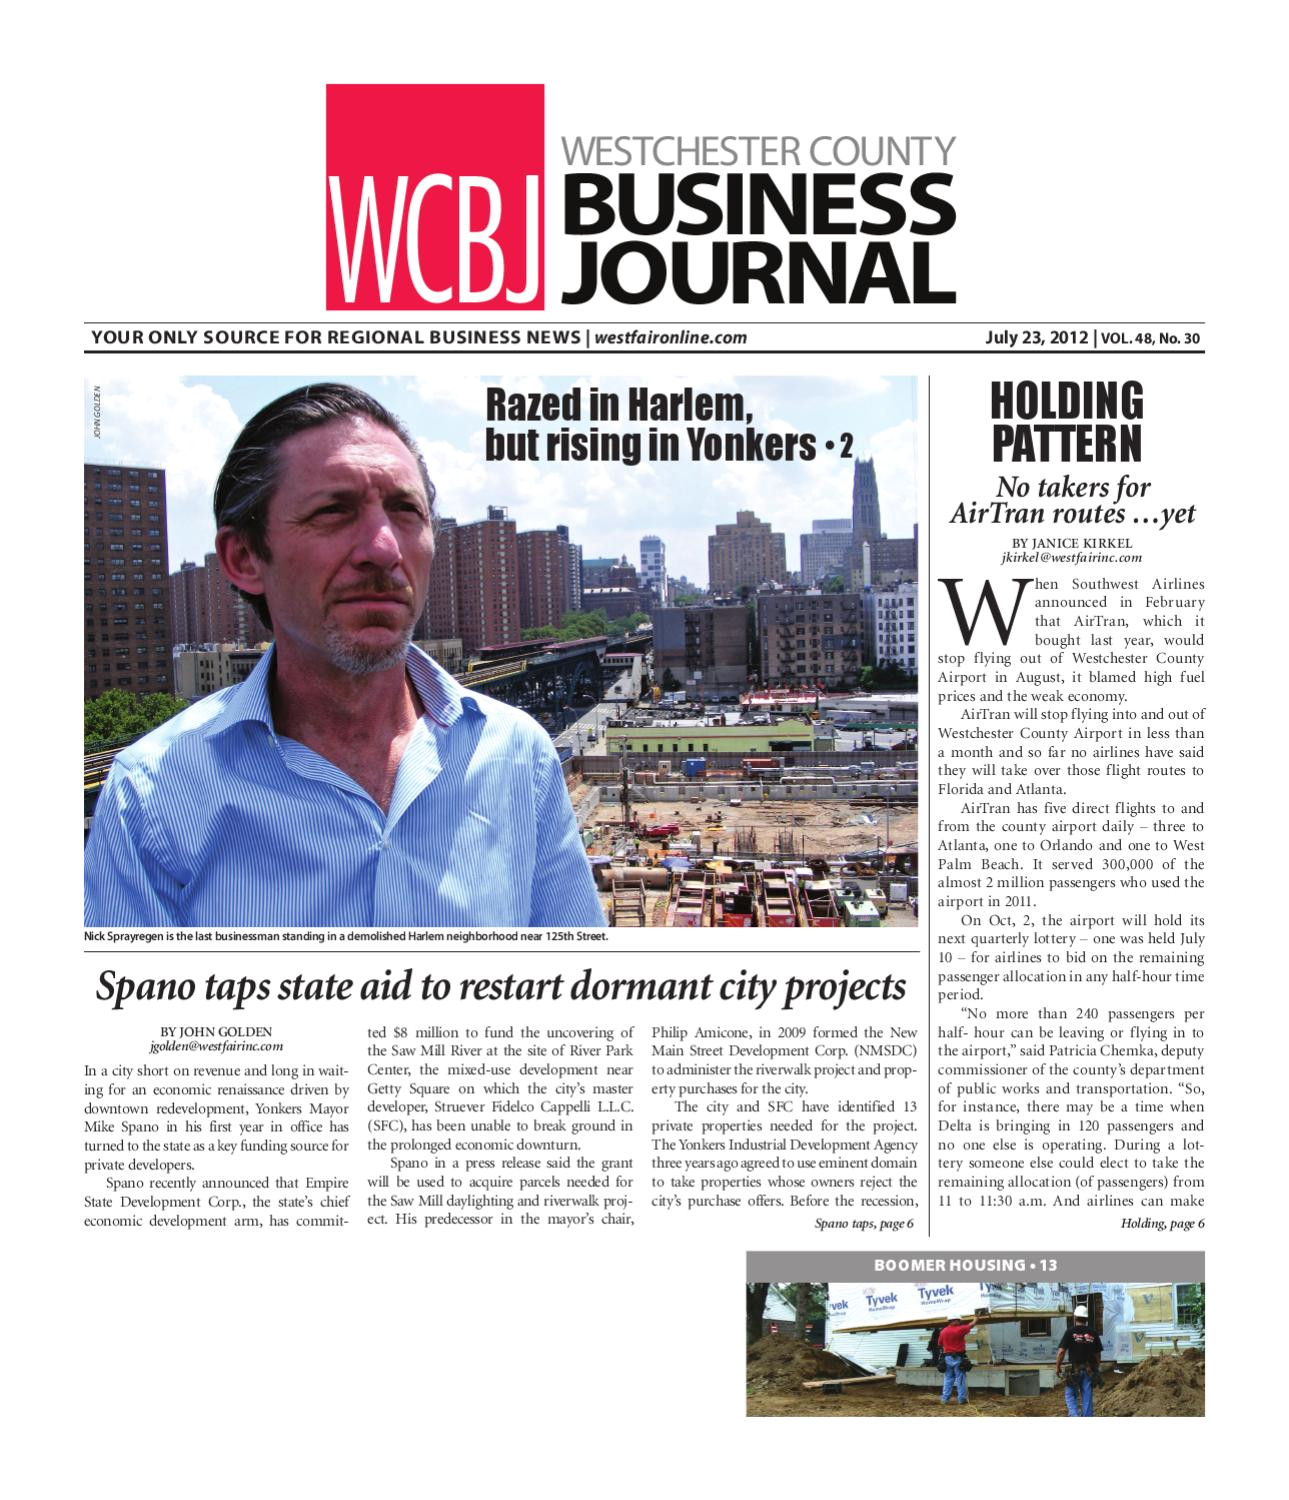 westchester county business journal 07 23 12 issue by wag magazine issuu